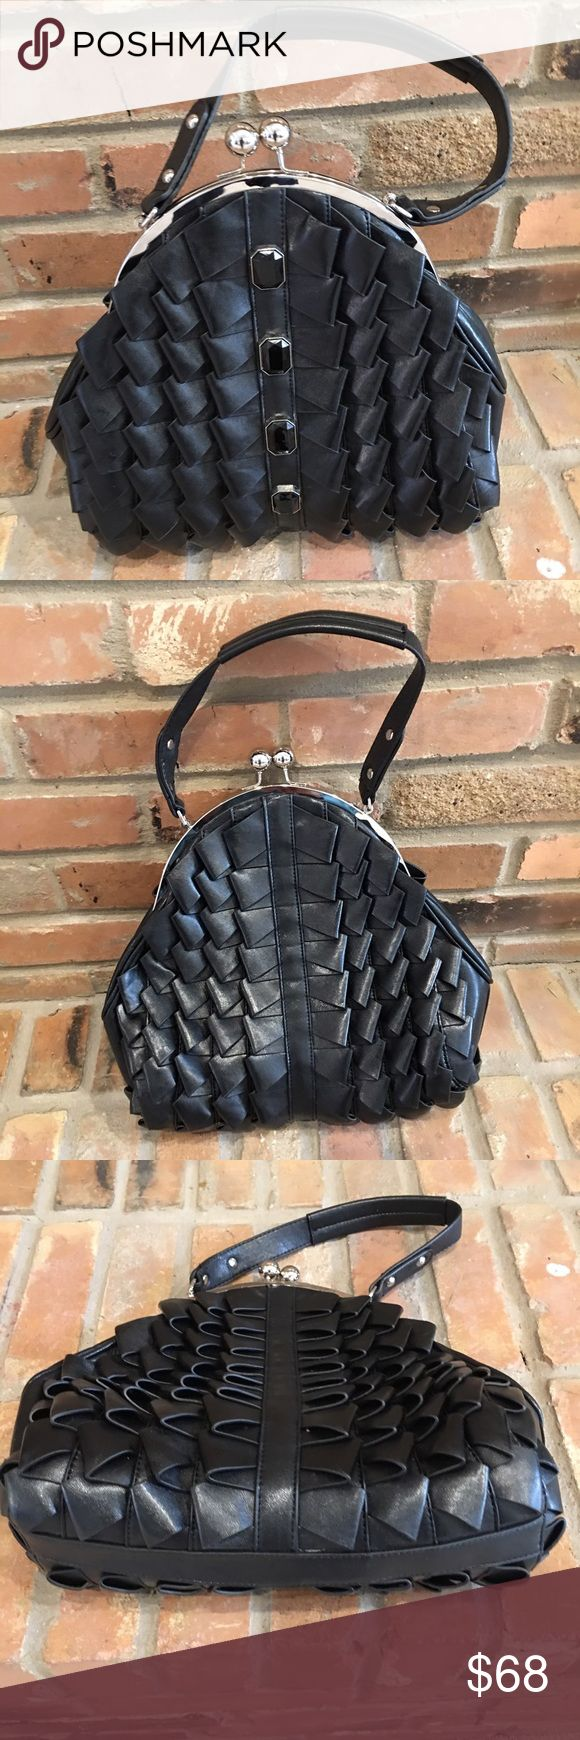 Nicole Lee black faux leather ruffle bag Like new. Carried once. Like it now. Description coming. Nicole Lee Bags